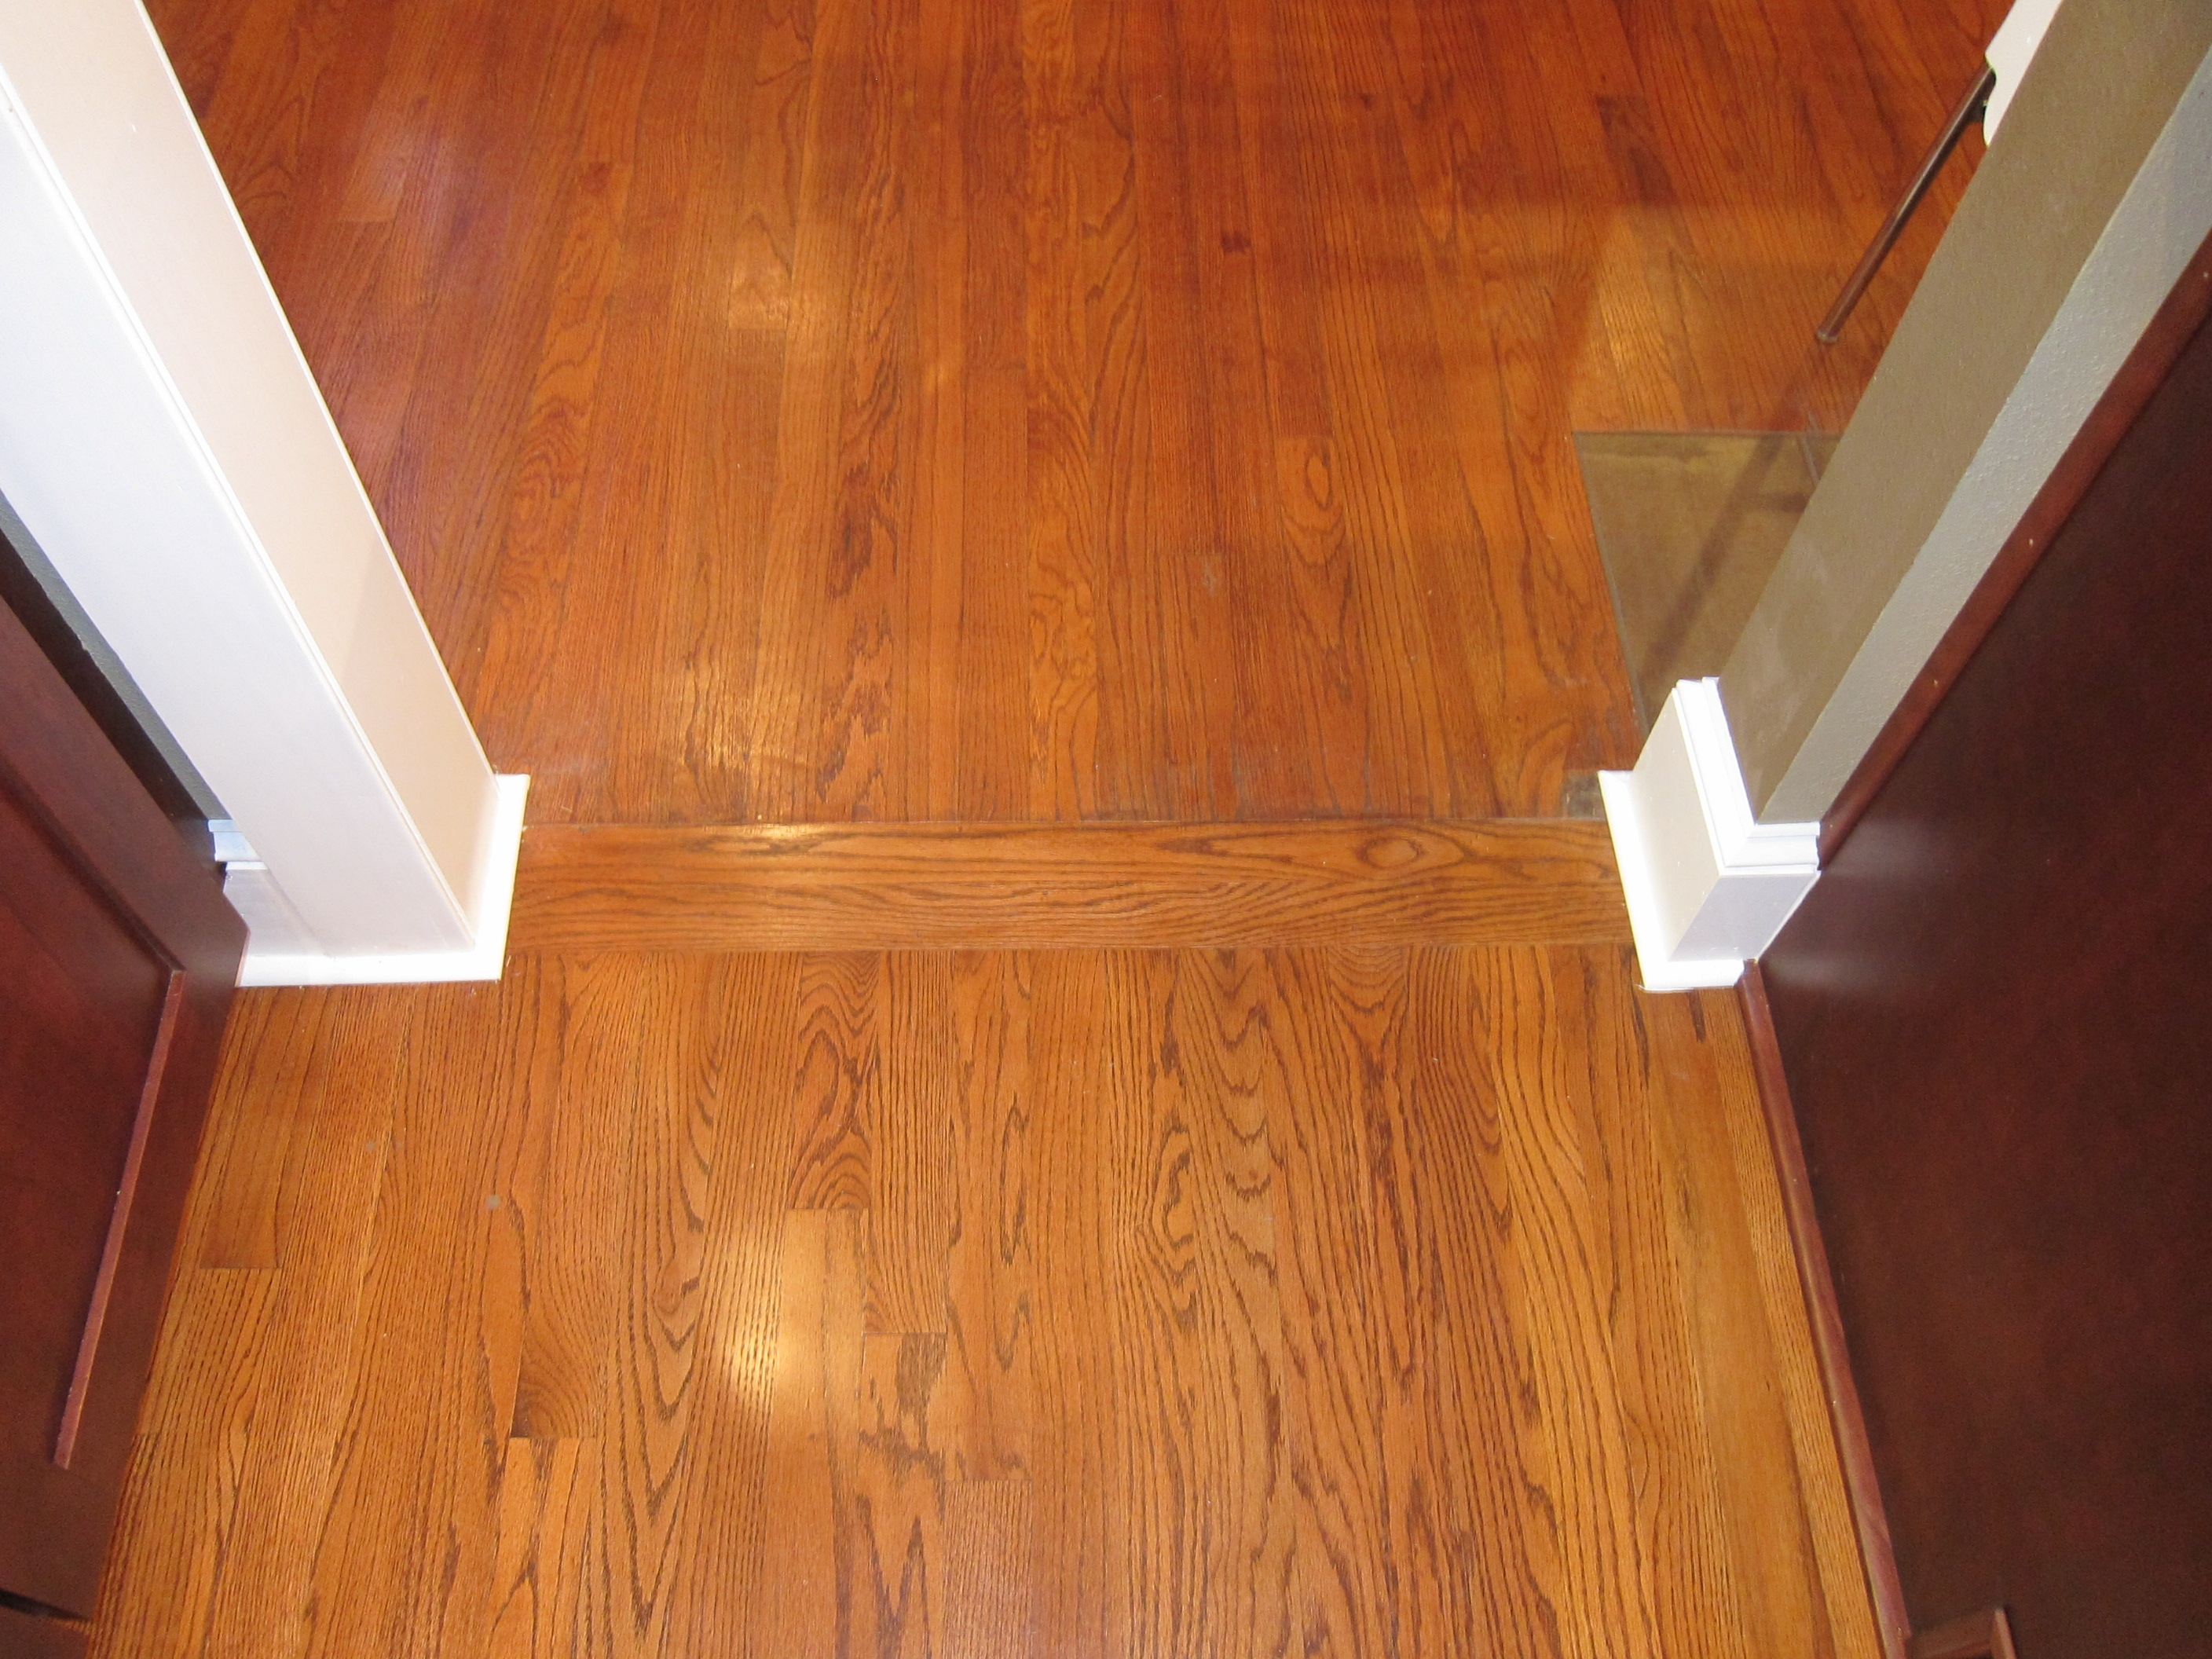 Engineered Wood Floor Transition Piece